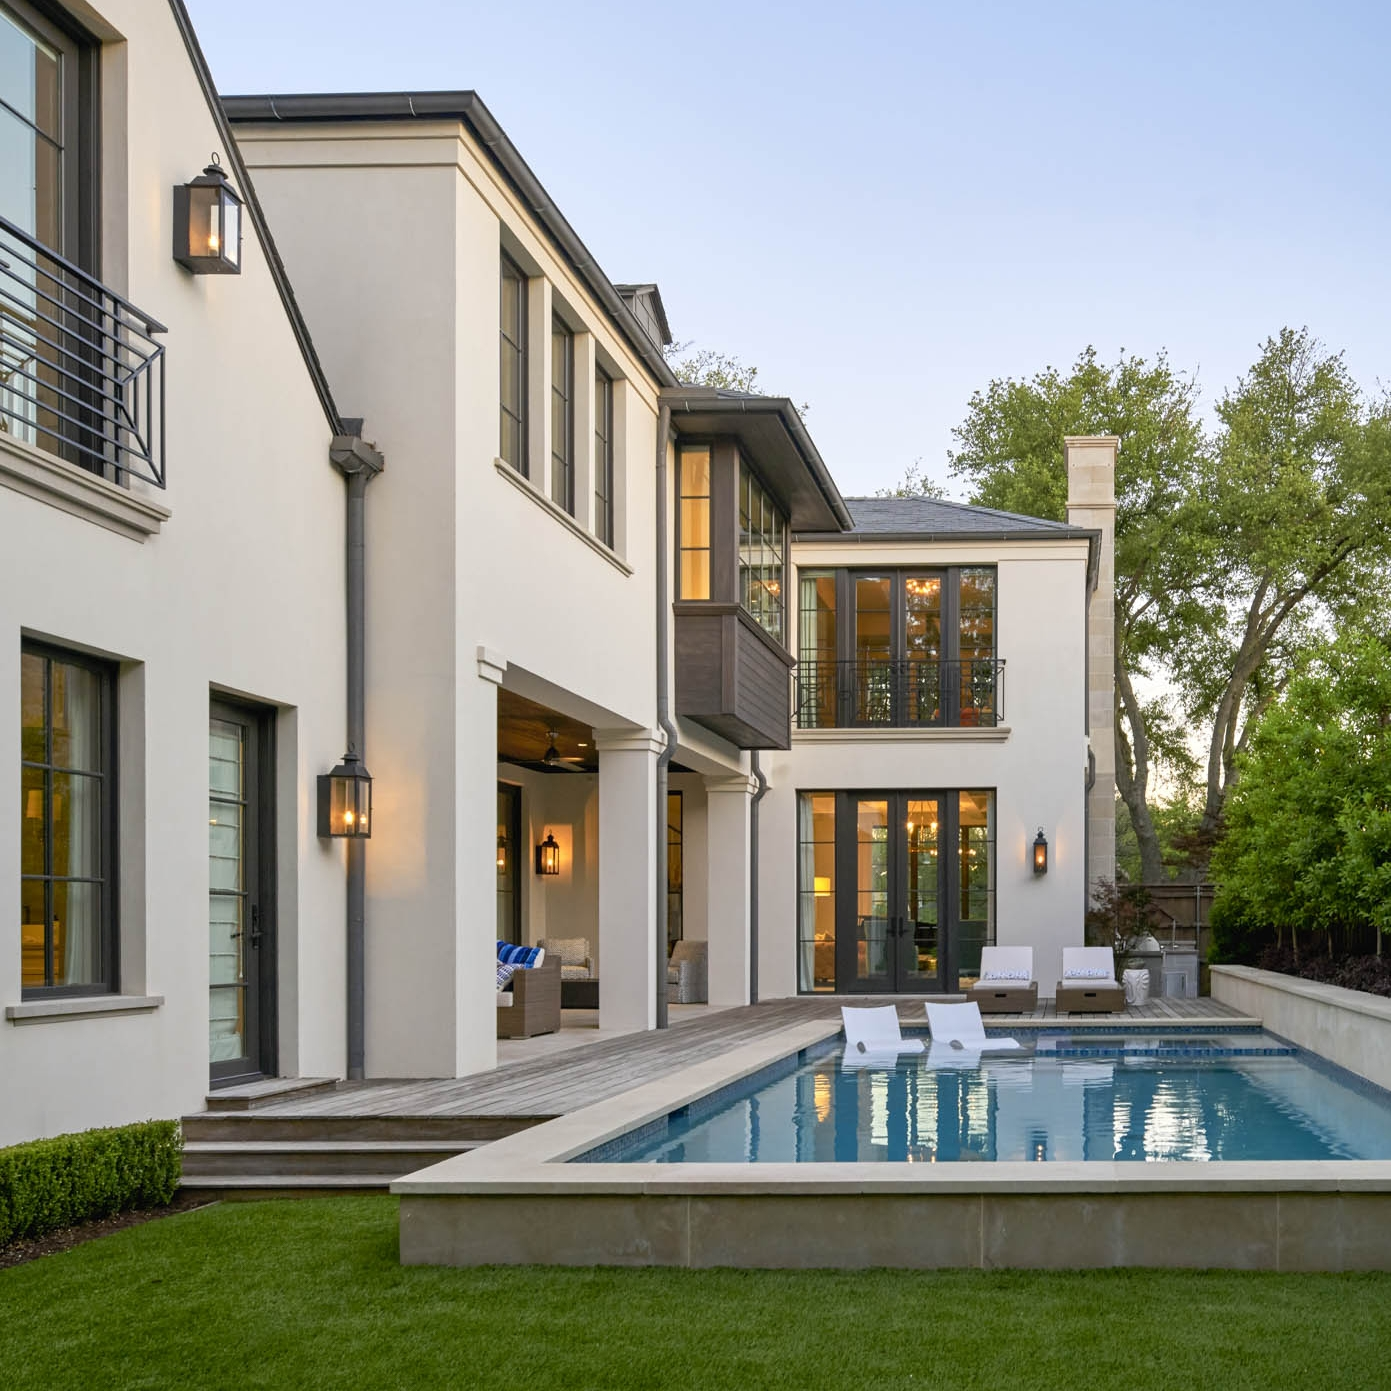 Dallas Luxury Home Design By Morgan Farrow Interiors - morganfarrow.com